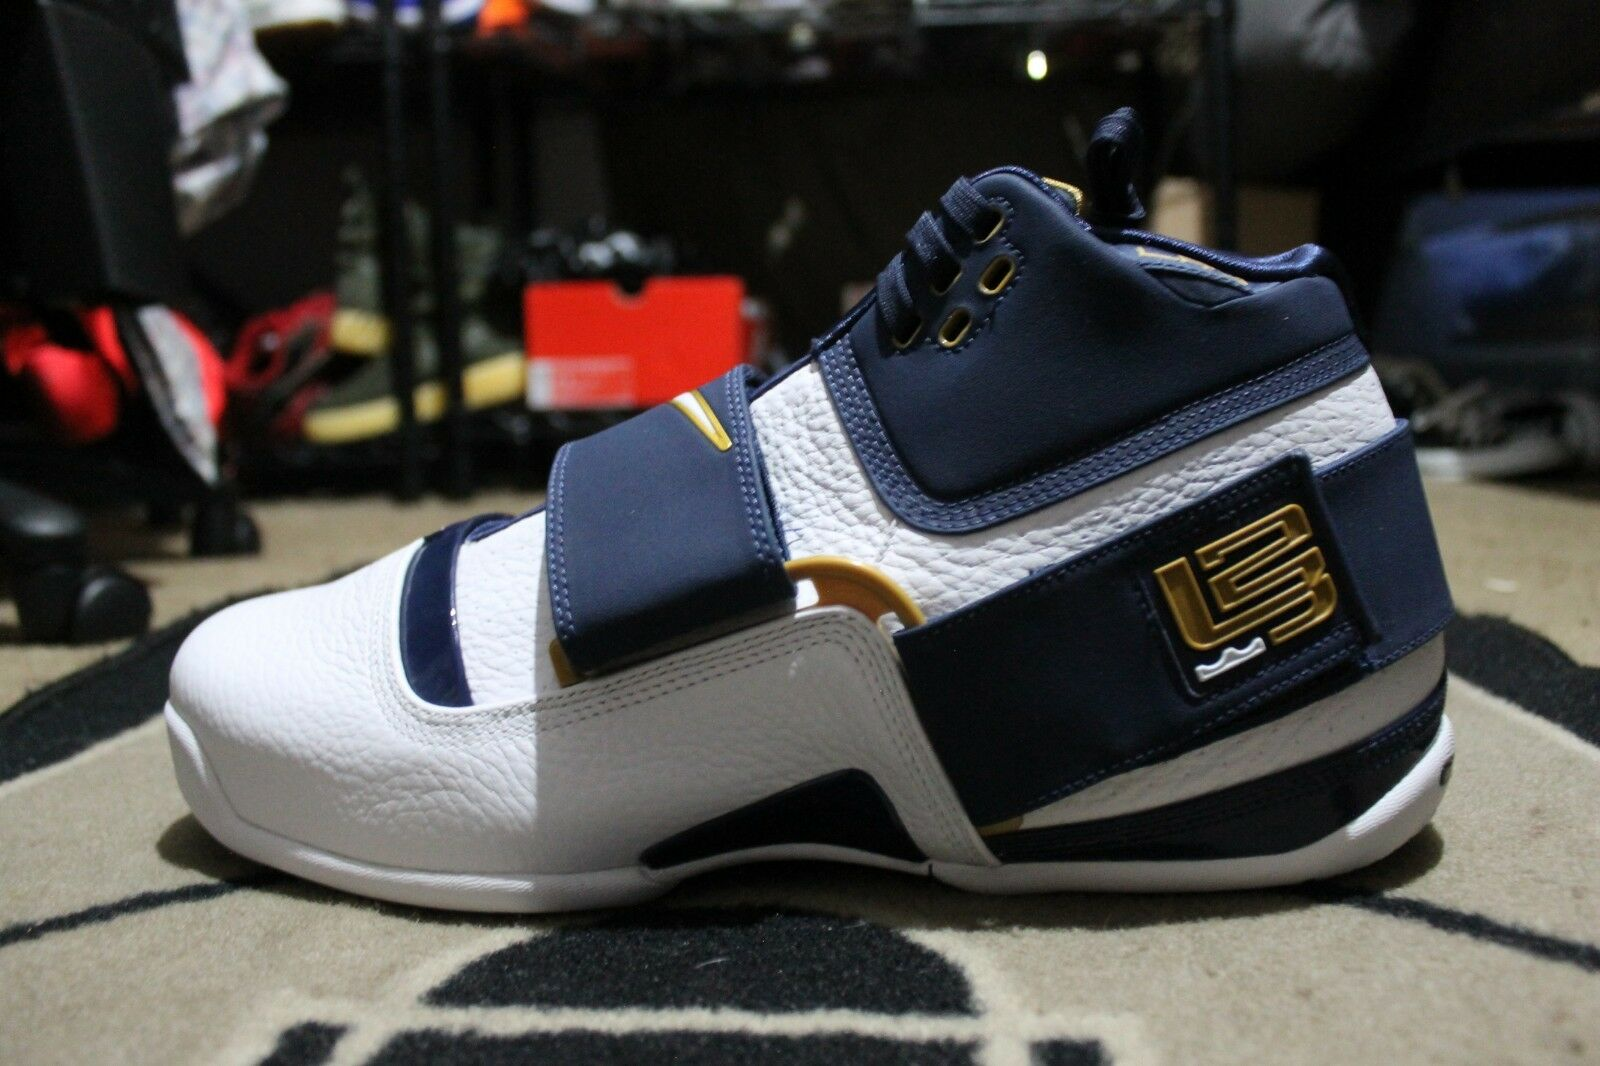 New Nike Zoom Lebron Soldier 1 CT16 QS 25 Midnight Navy AO2088-400 Sz 14